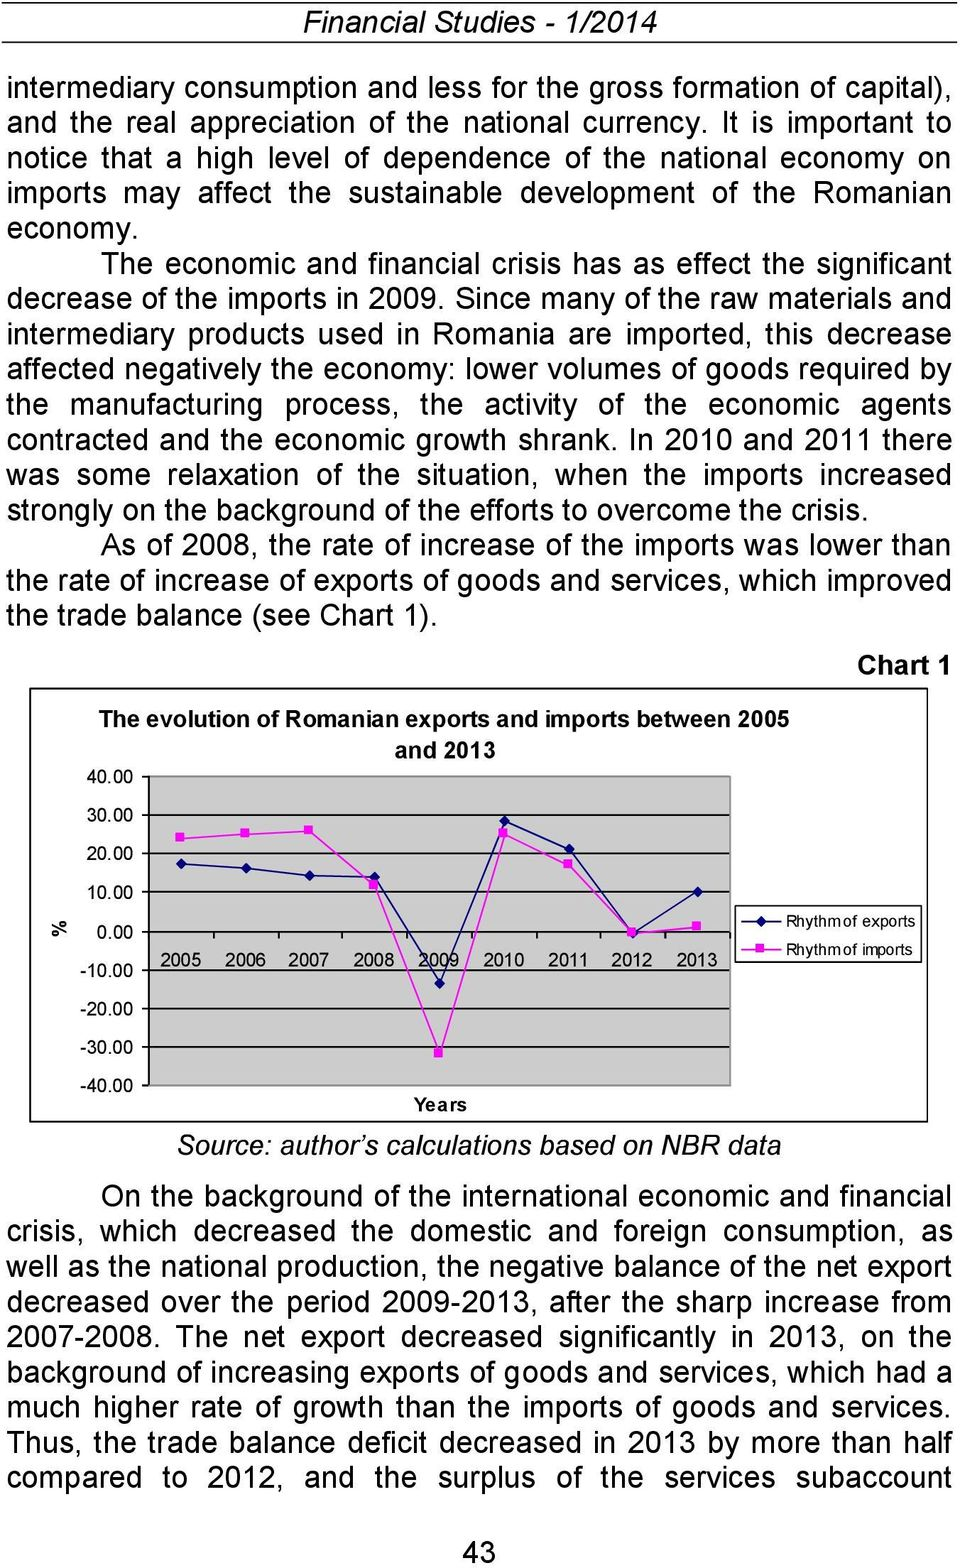 The economic and financial crisis has as effect the significant decrease of the imports in 2009.